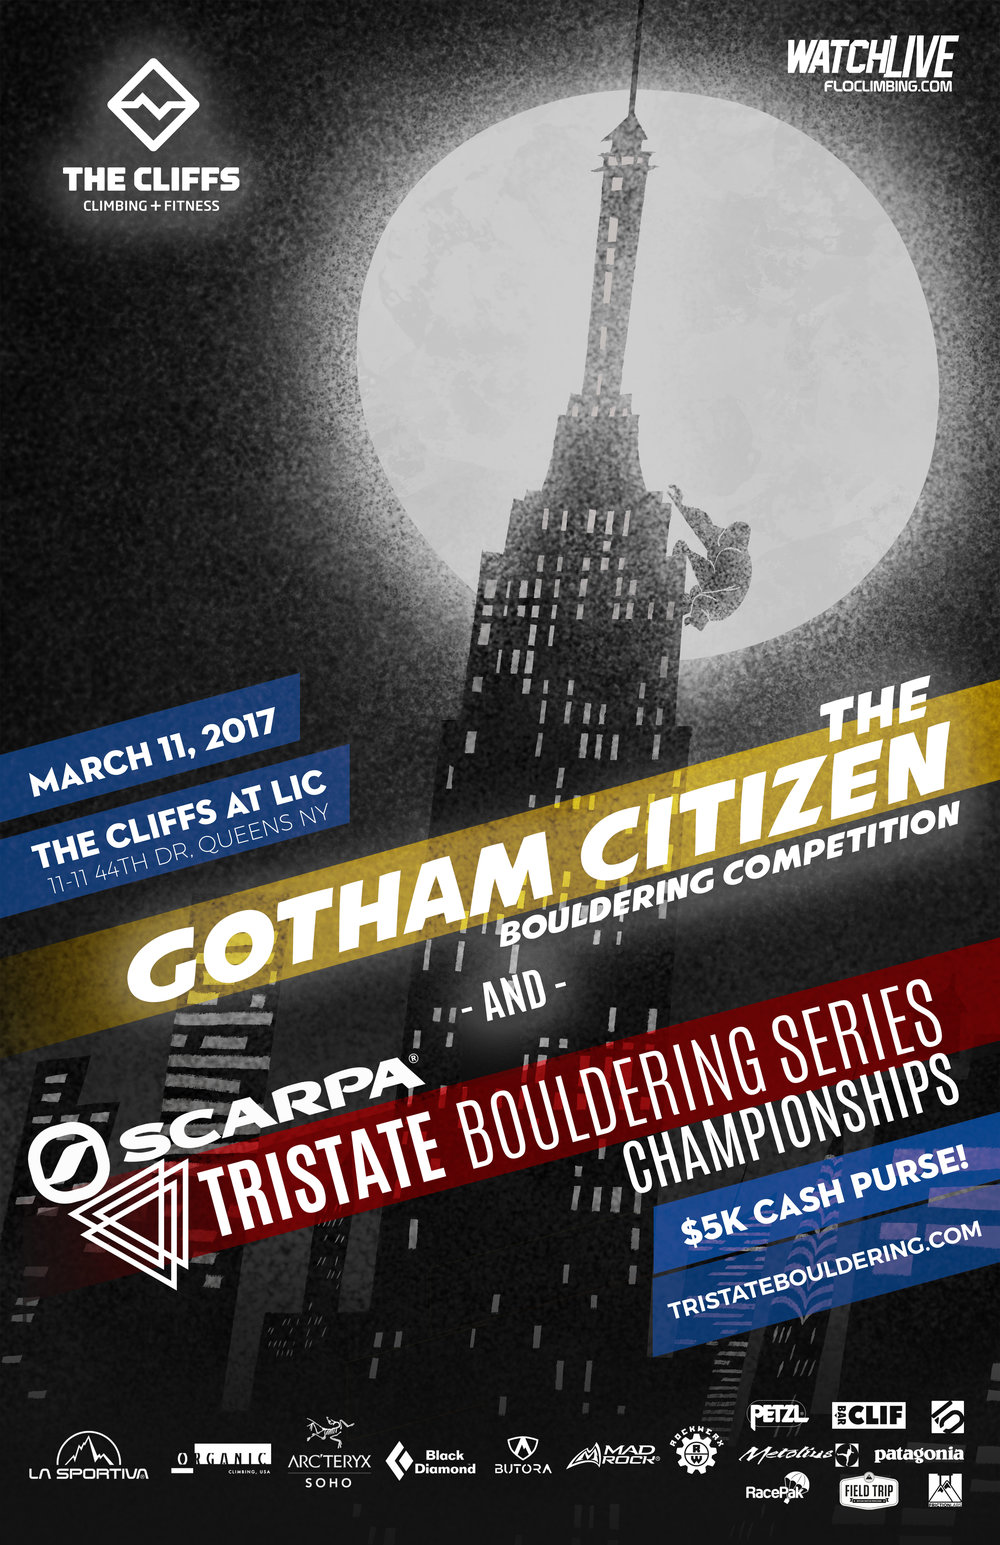 gotham citizen + TBS OPEN CITIzEN YOUTH